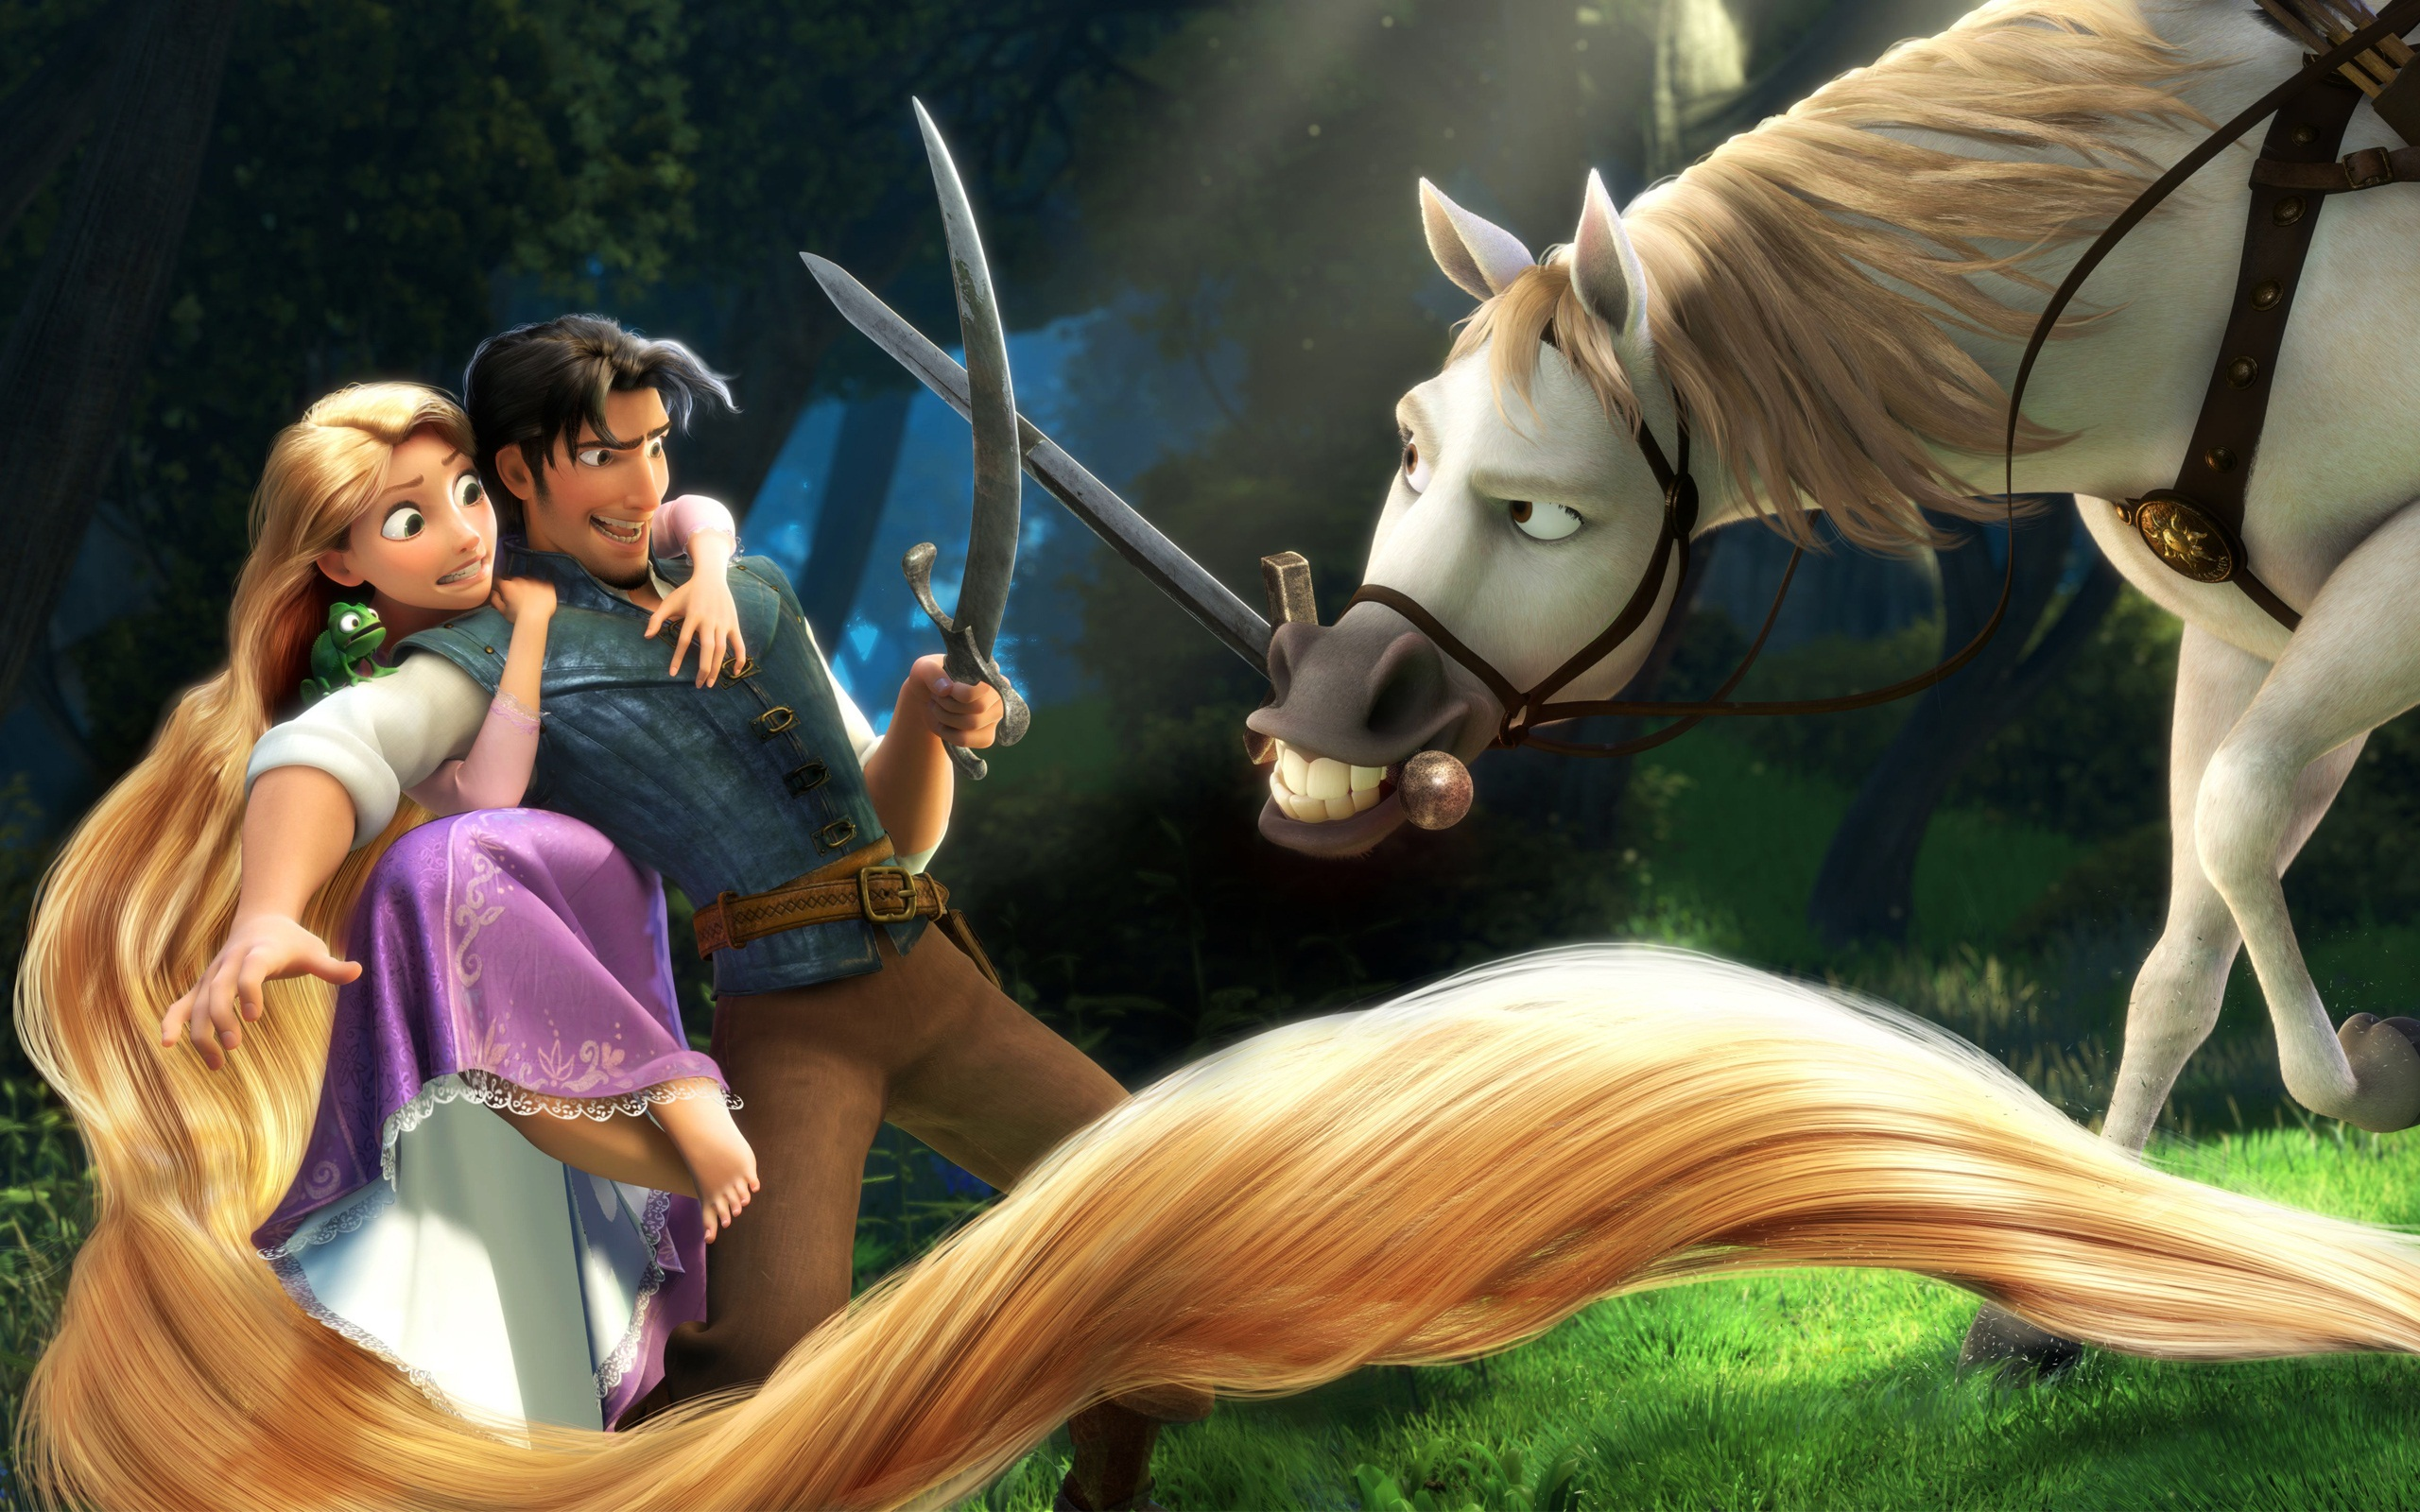 Rapunzel Flynn in Tangled Wallpapers HD Wallpapers 2560x1600